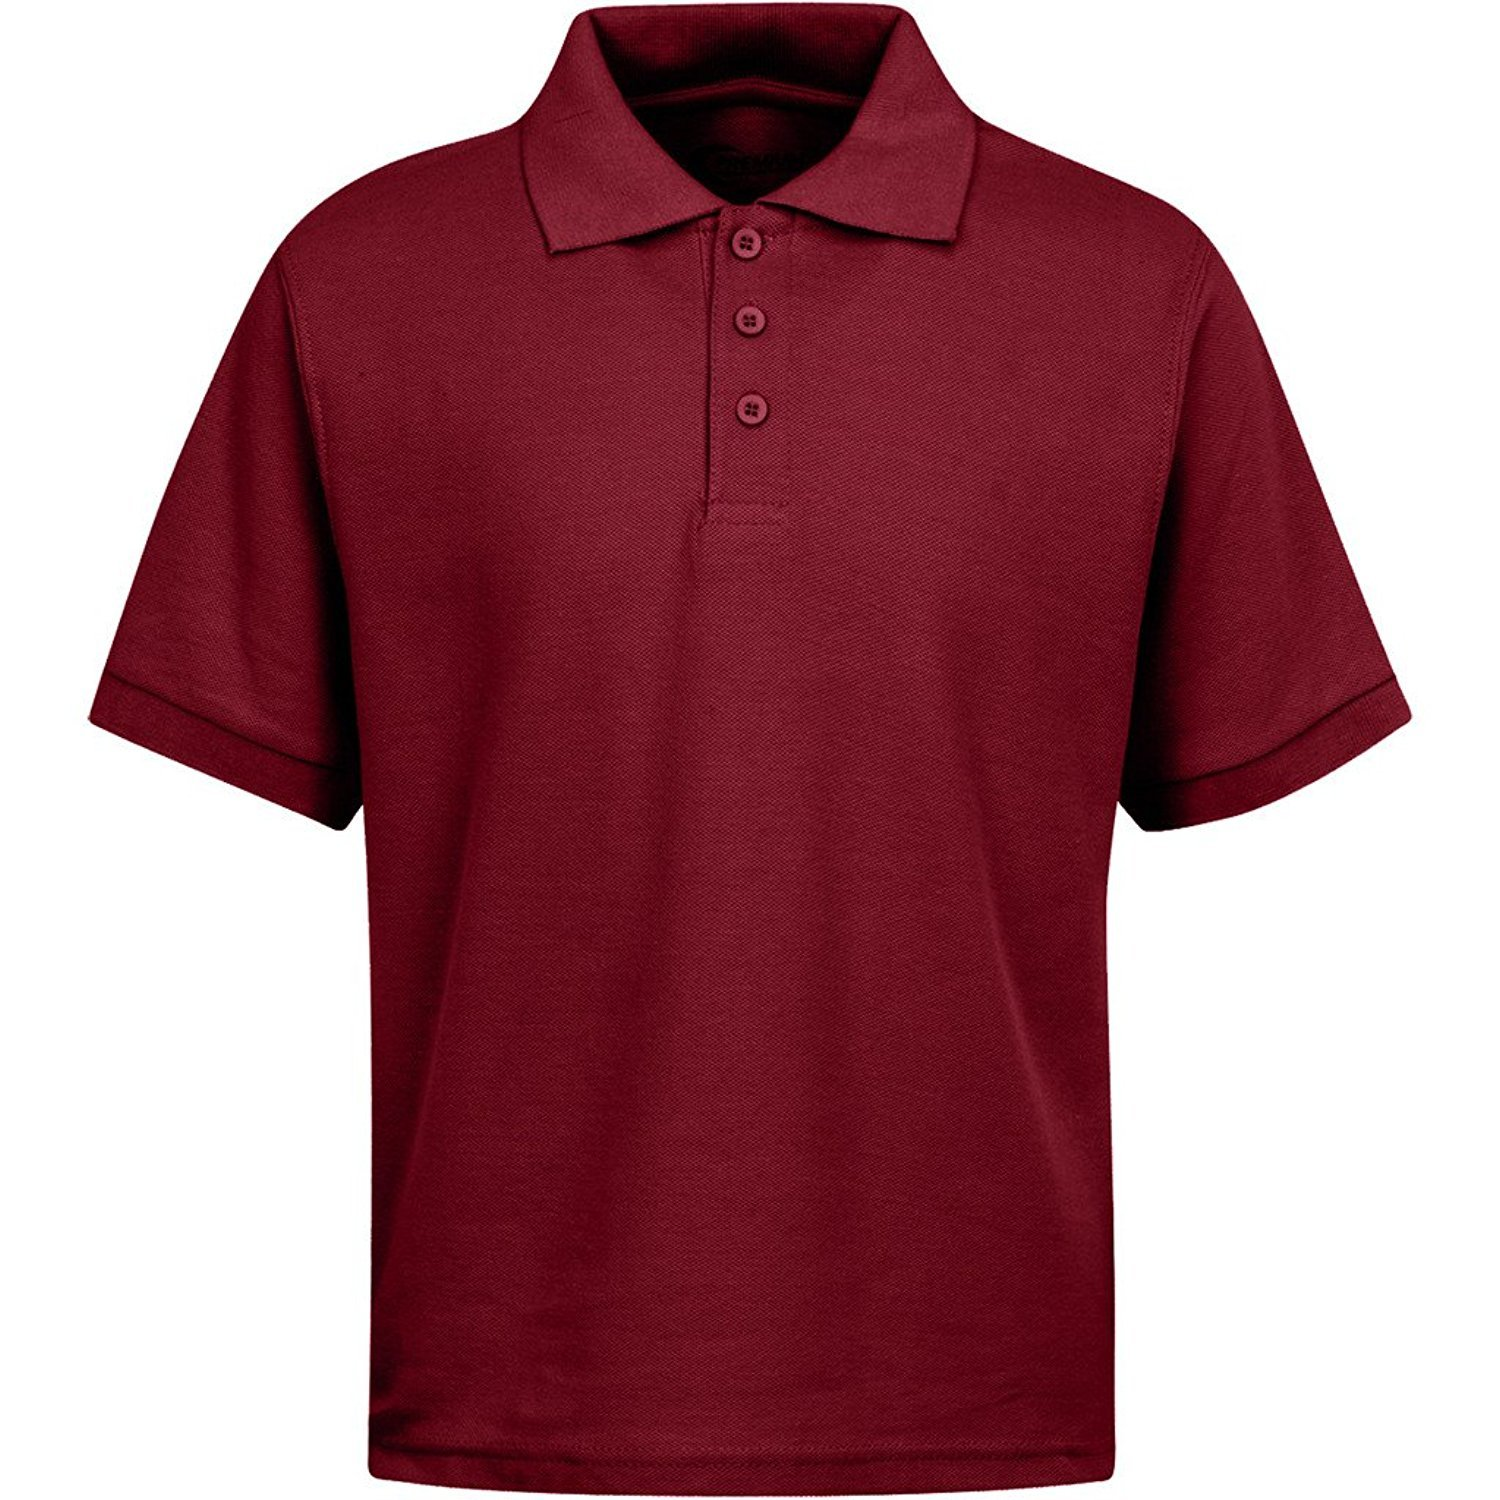 66eabe9f0 Premium Men s Polo Shirts – Short Sleeves Stain Guard Polo Shirts for Men